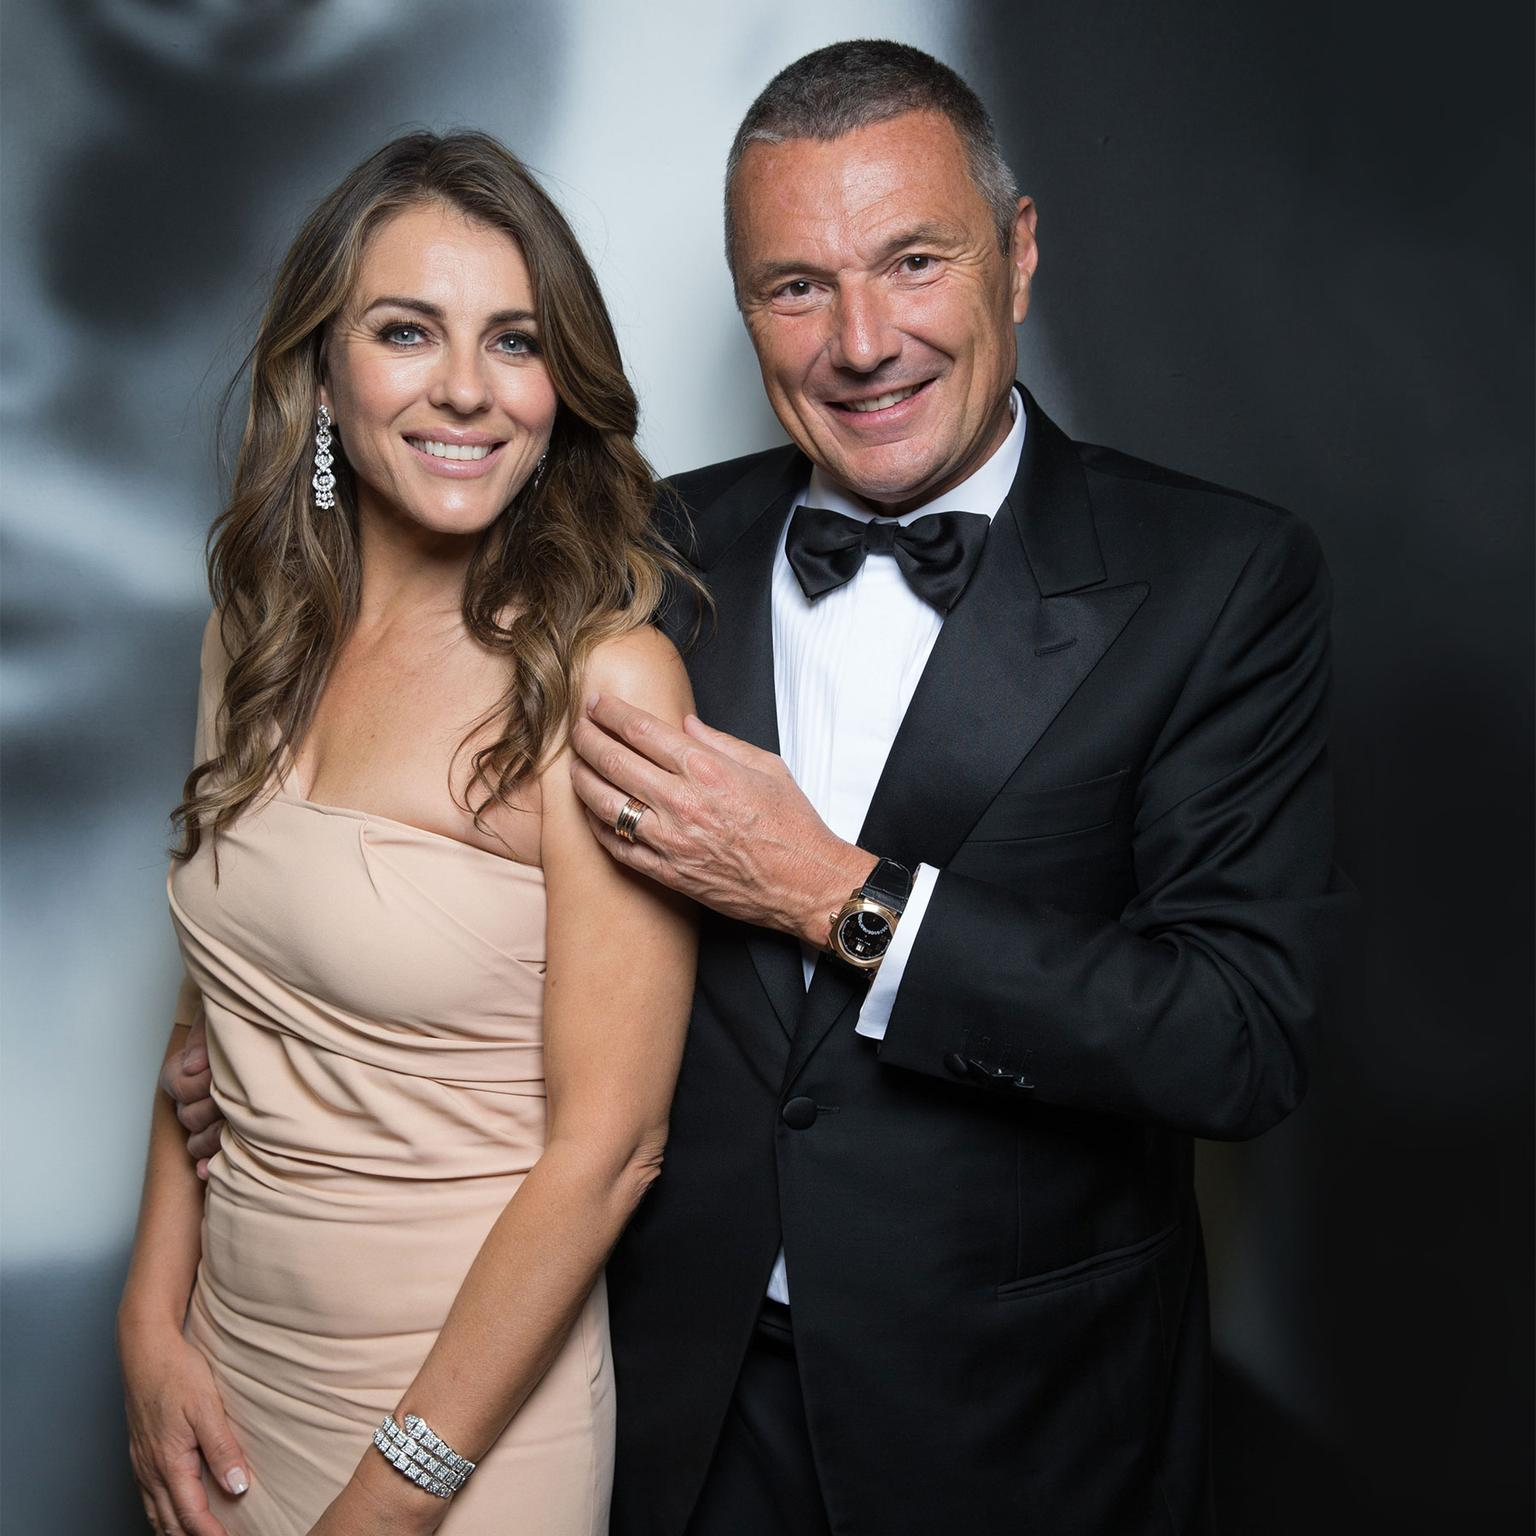 Liz Hurley and Bulgari's Jean-Christophe Babin at Elton John's AIDS Foundation